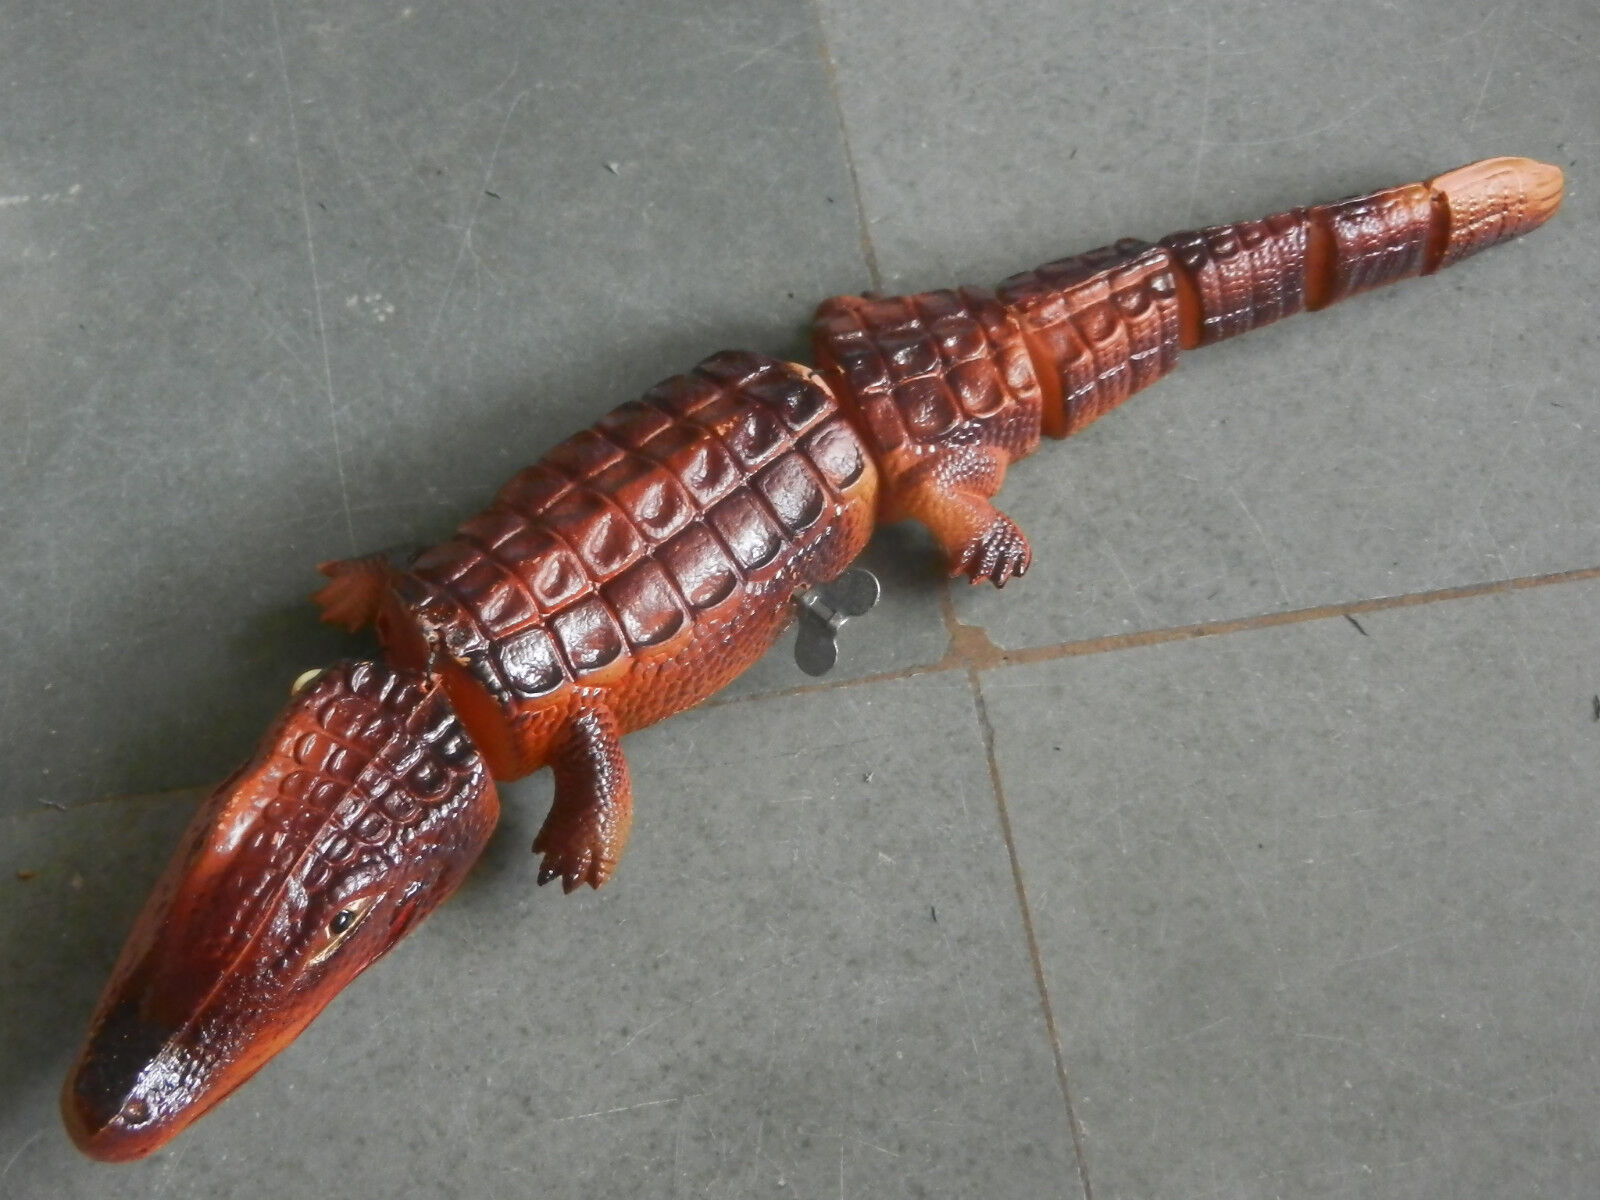 Rare Rare Rare Vintage Wind Up Boxed MT Trademark Celluloid Crocodile Toy , Japan 74554f